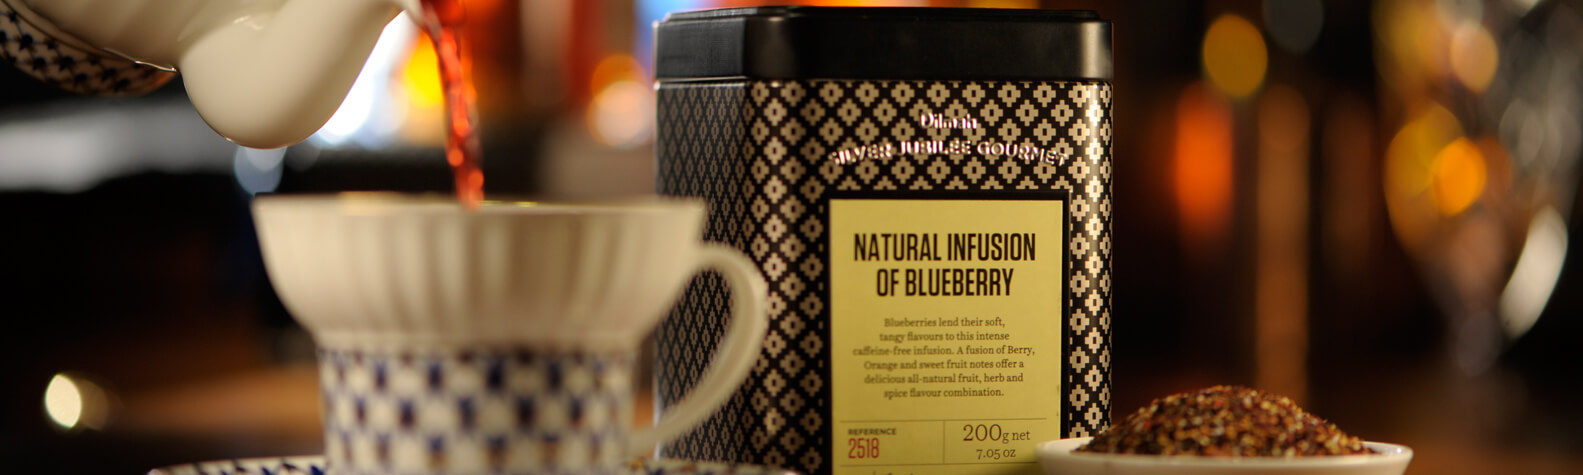 Container of Natural Infusion of Blueberry and a Cup of Tea